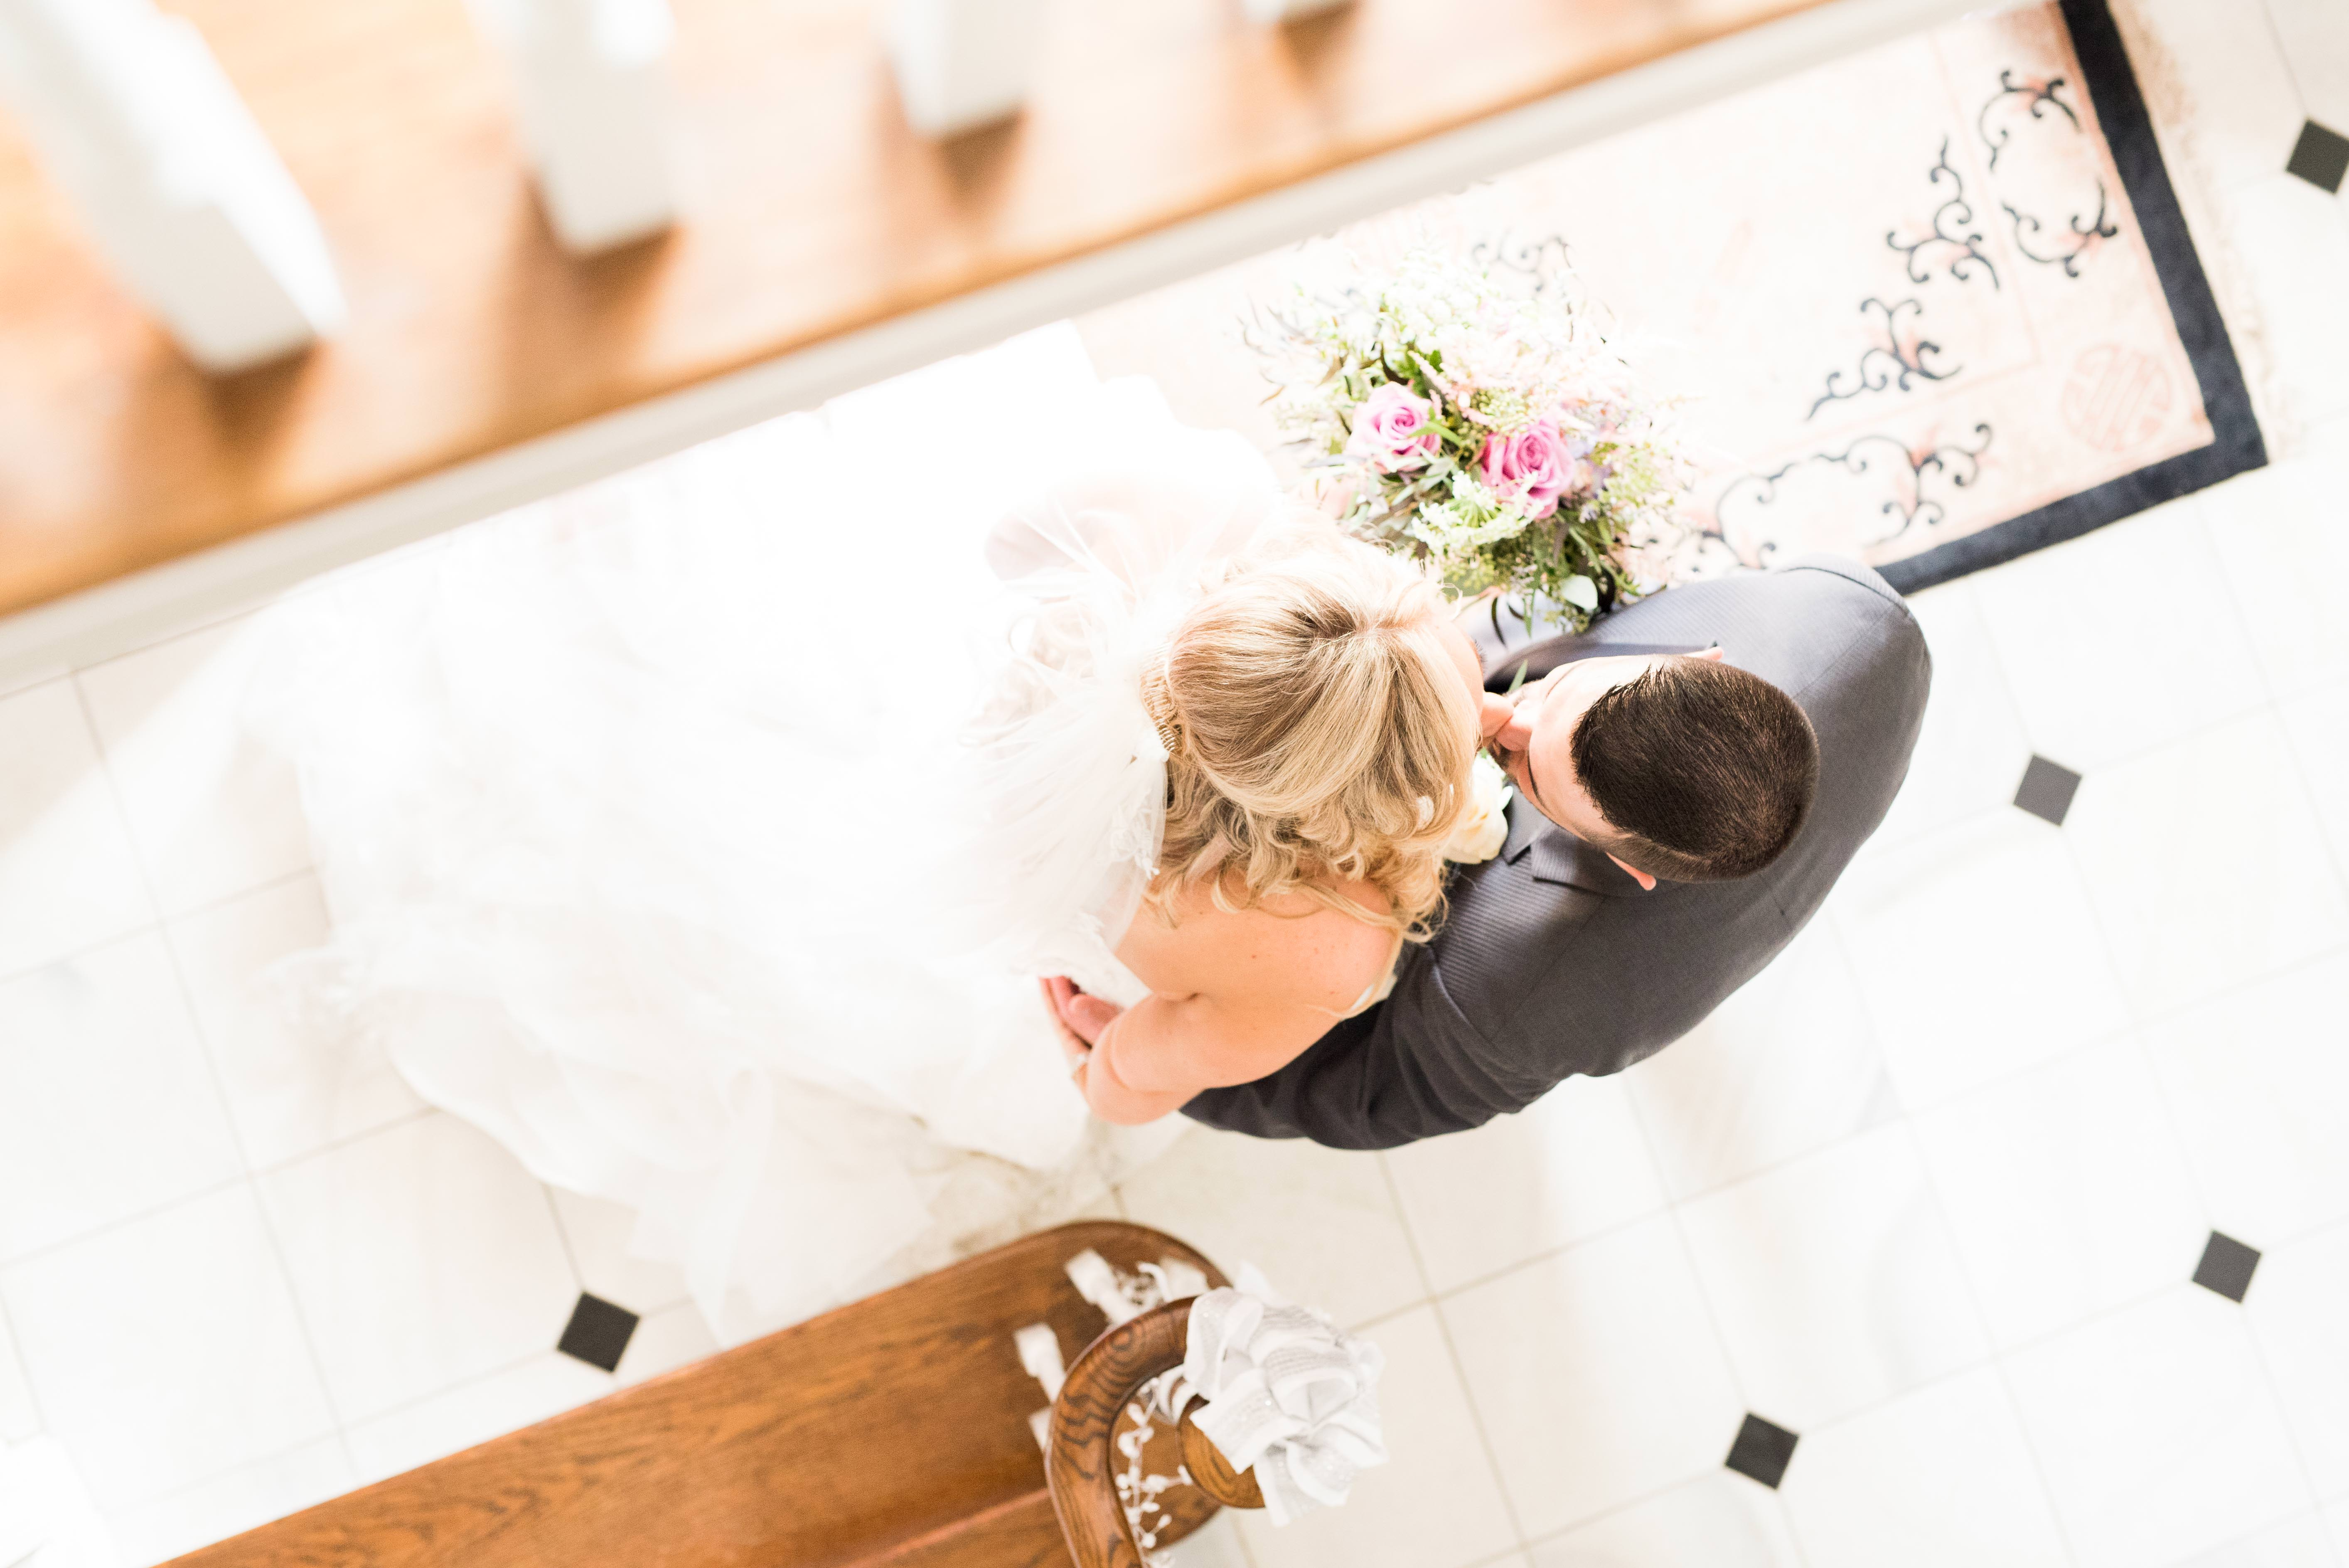 first look, first reveal at Five Bridge Inn Rehoboth, MA by Q Hegarty Photography wedding photographer near Boston, MA